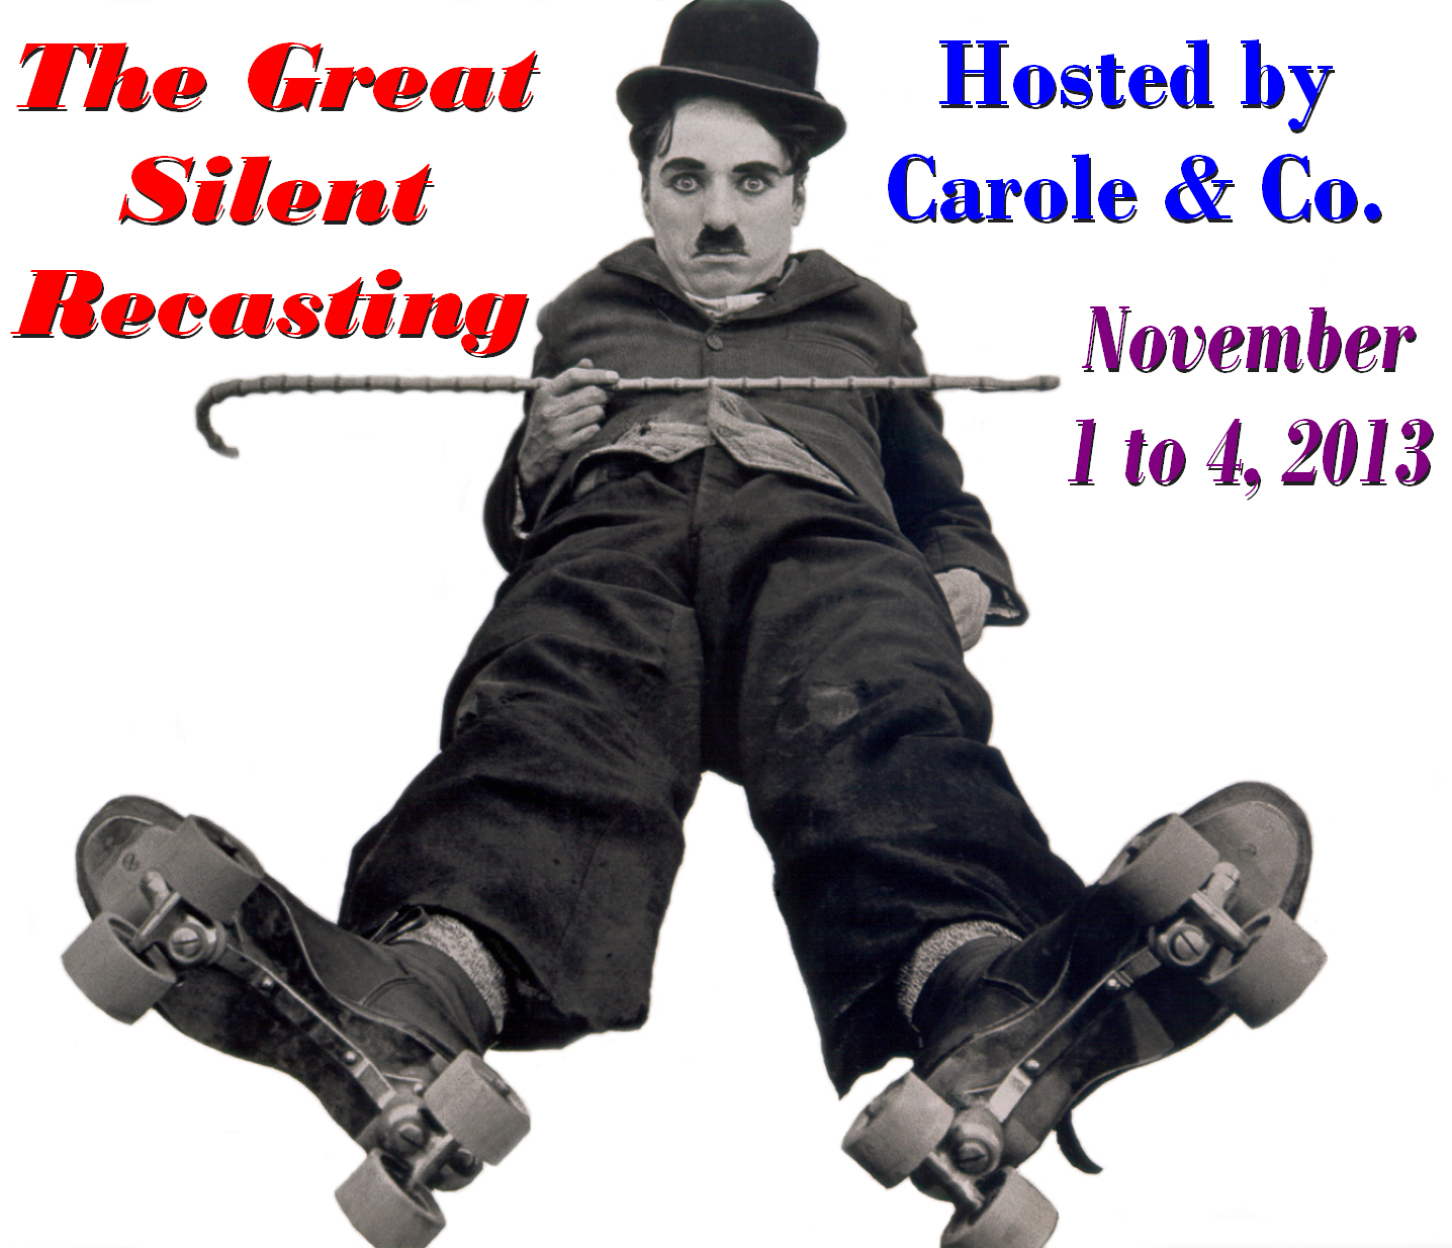 the great silent recasting 2013 charlie chaplin 00b